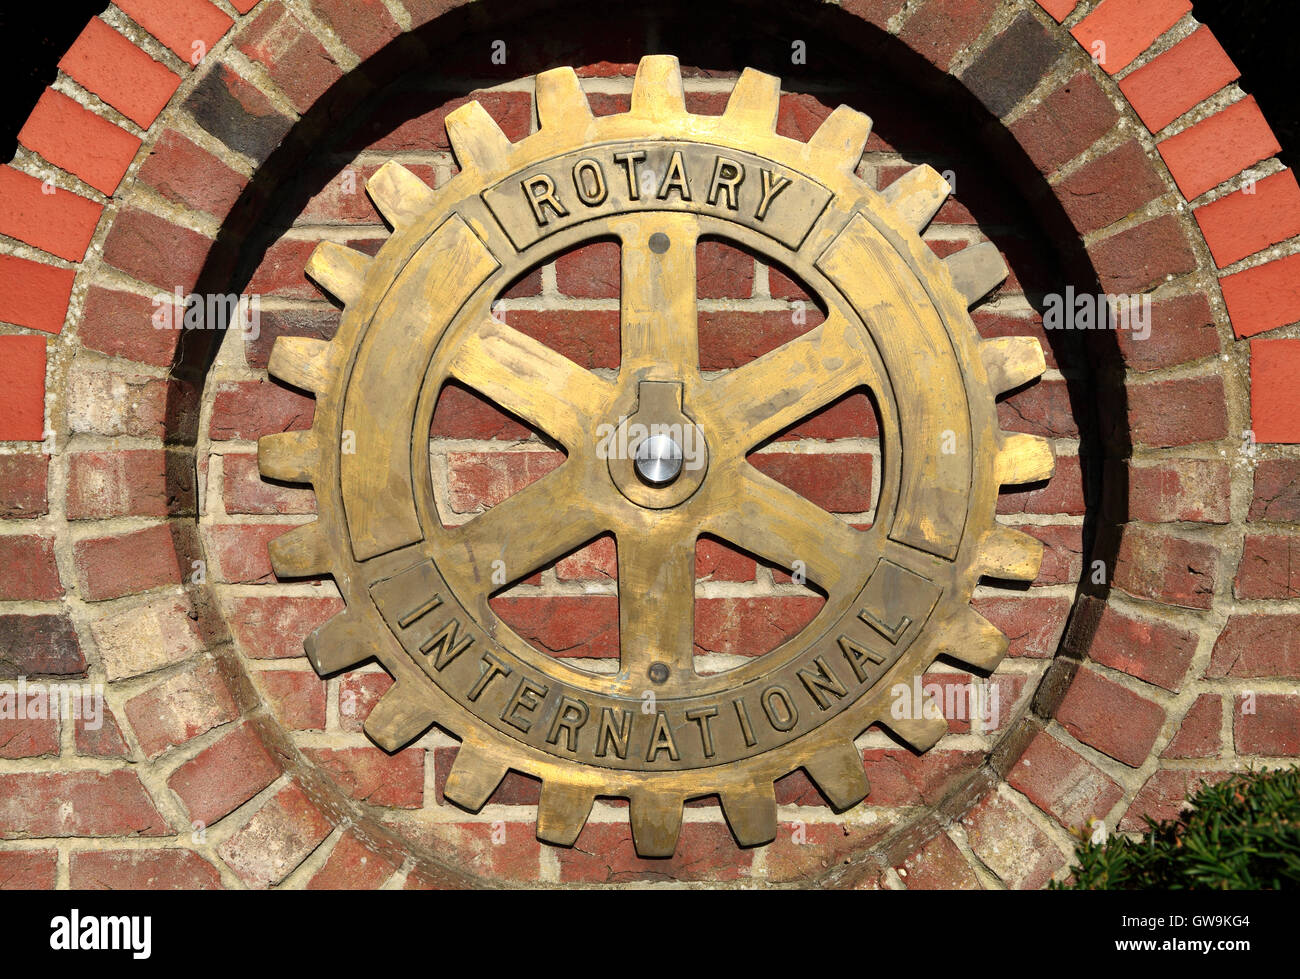 Rotary International, logo, insignia, badge, Hunstanton Norfolk England UK club clubs - Stock Image